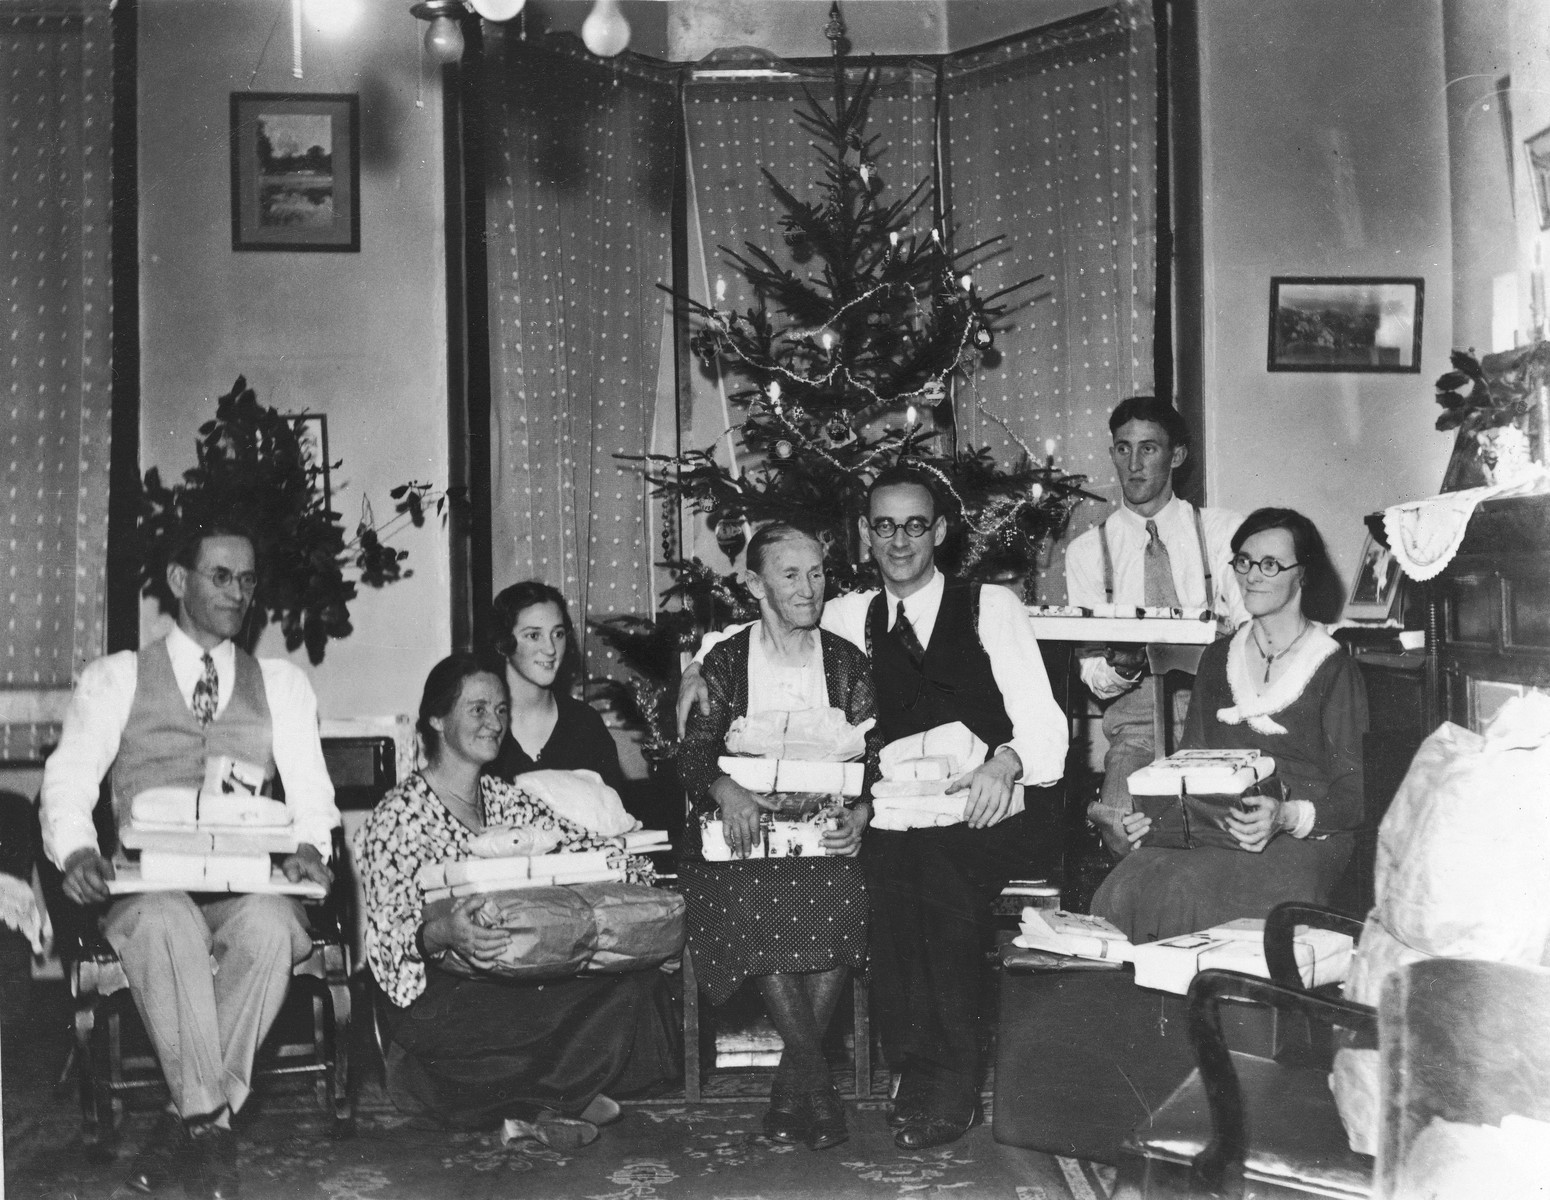 Consul Charles (Carl) Lutz (center, right) poses with his mother at a Christmas party.